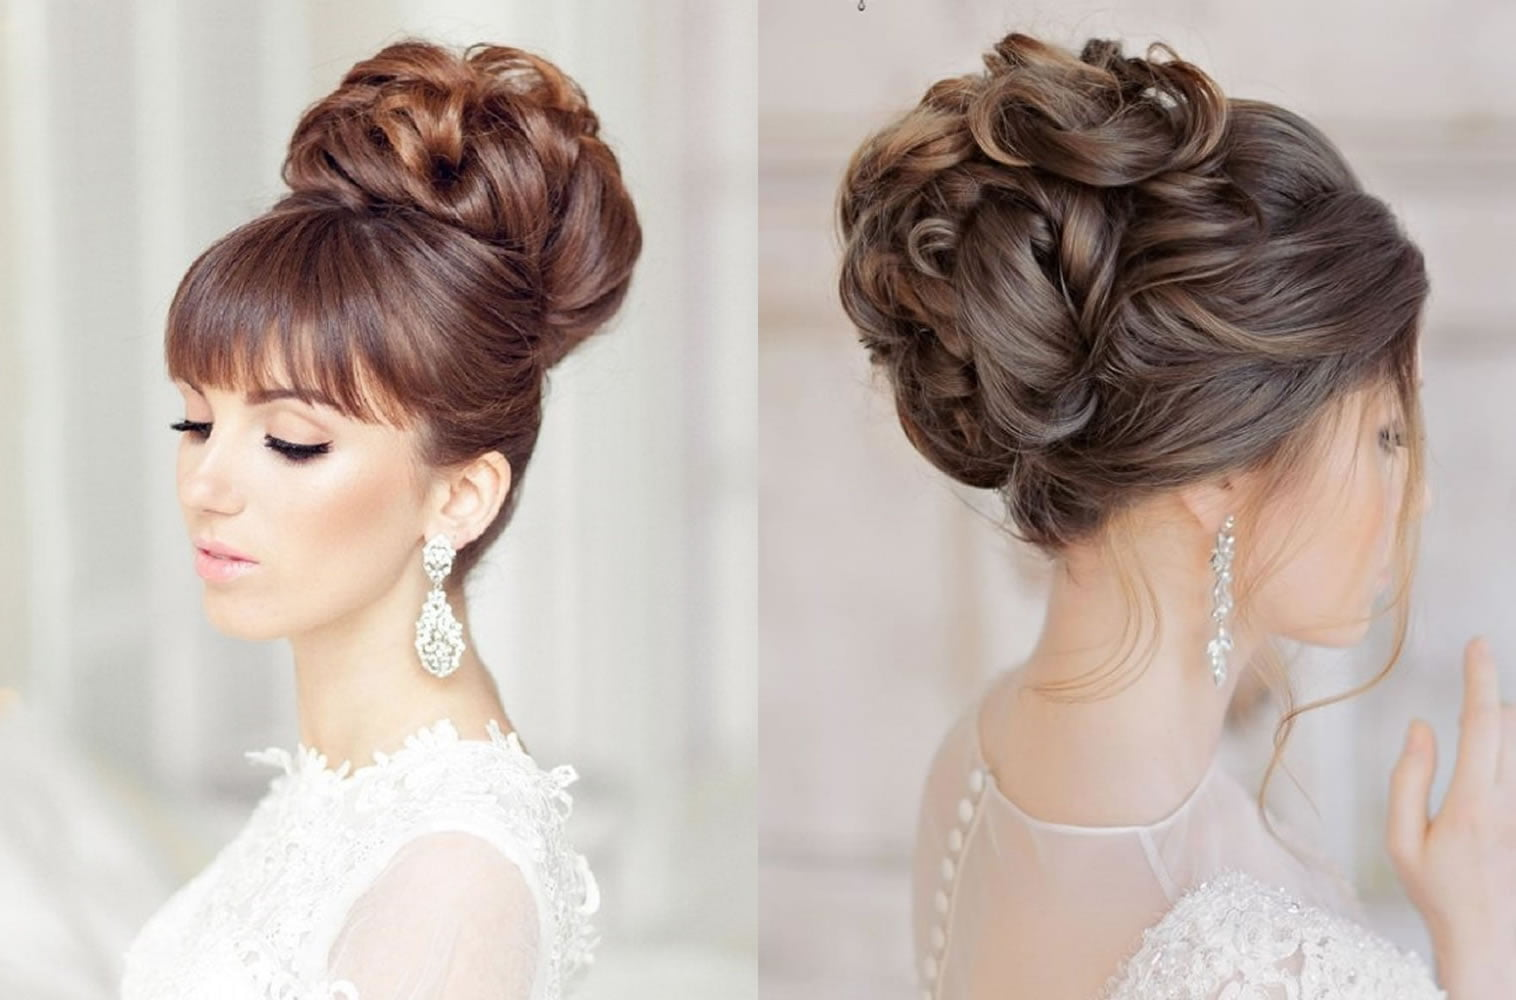 Funky Hairstyles Wedding Down Illustration - The Wedding Ideas ...